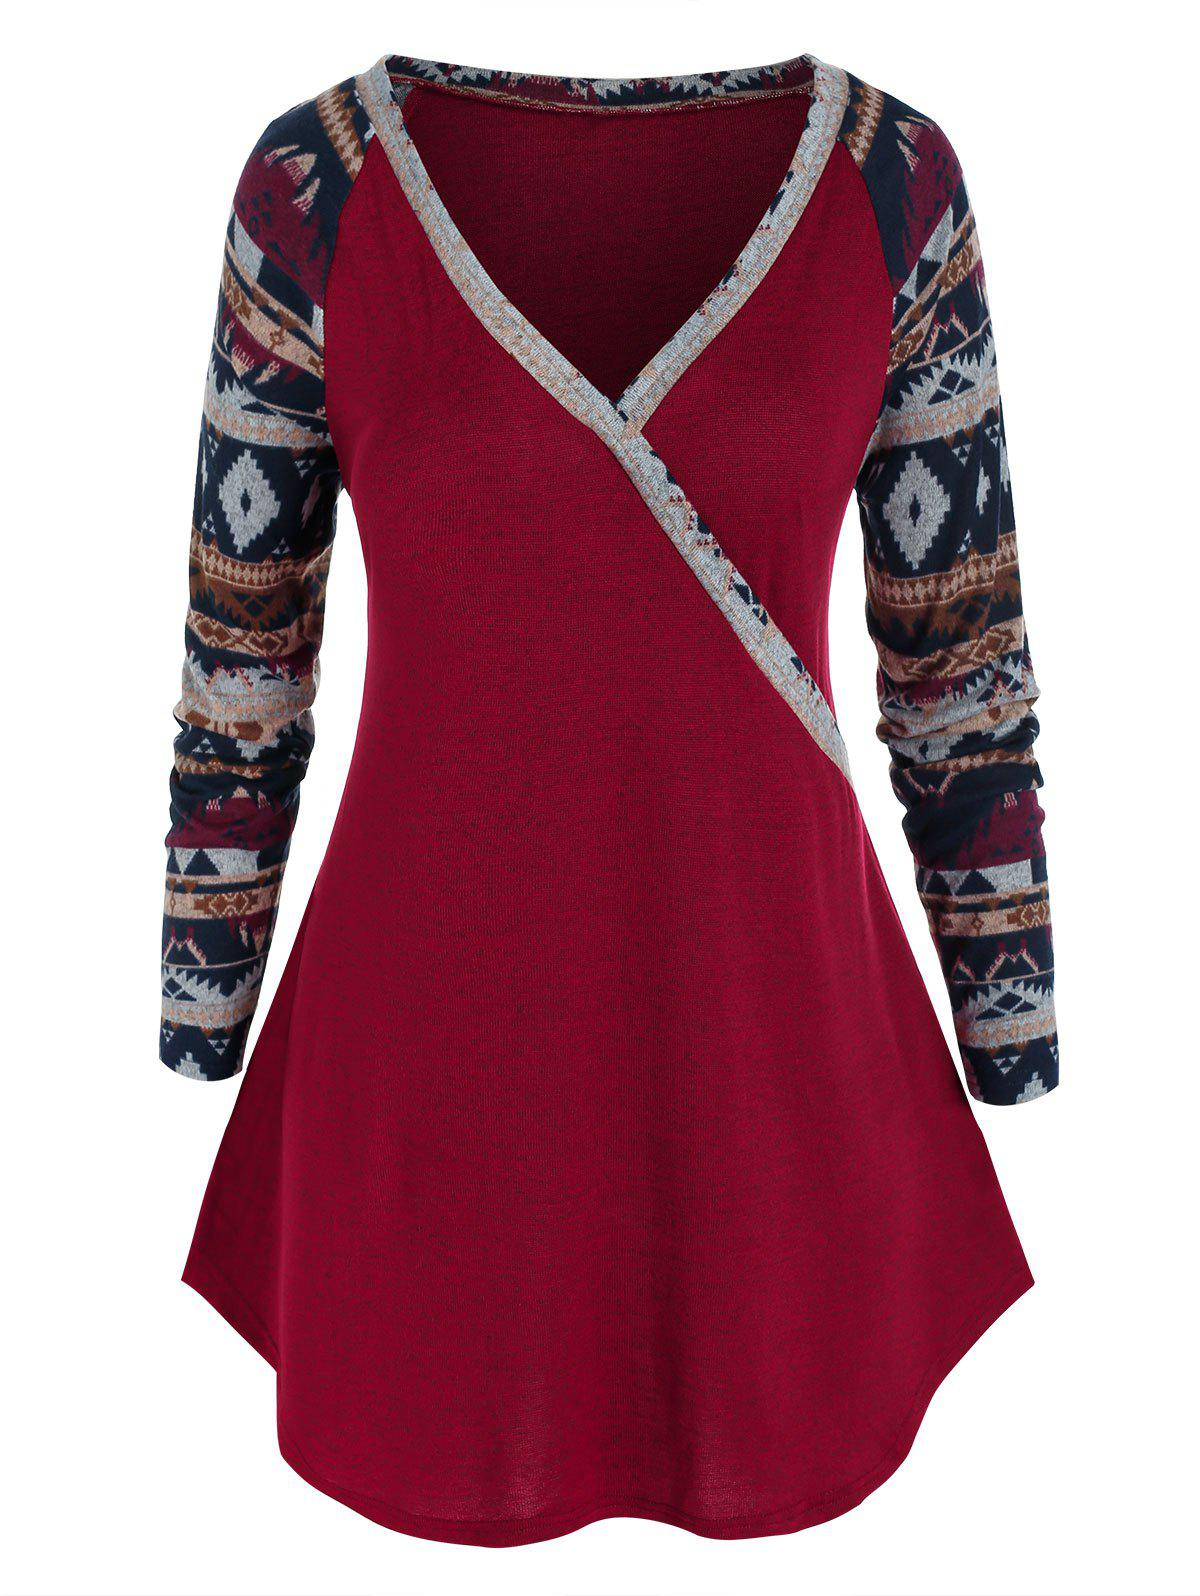 Plus Size Aztec Print Long Sleeve Knitted Tunic Tee - RED 5X